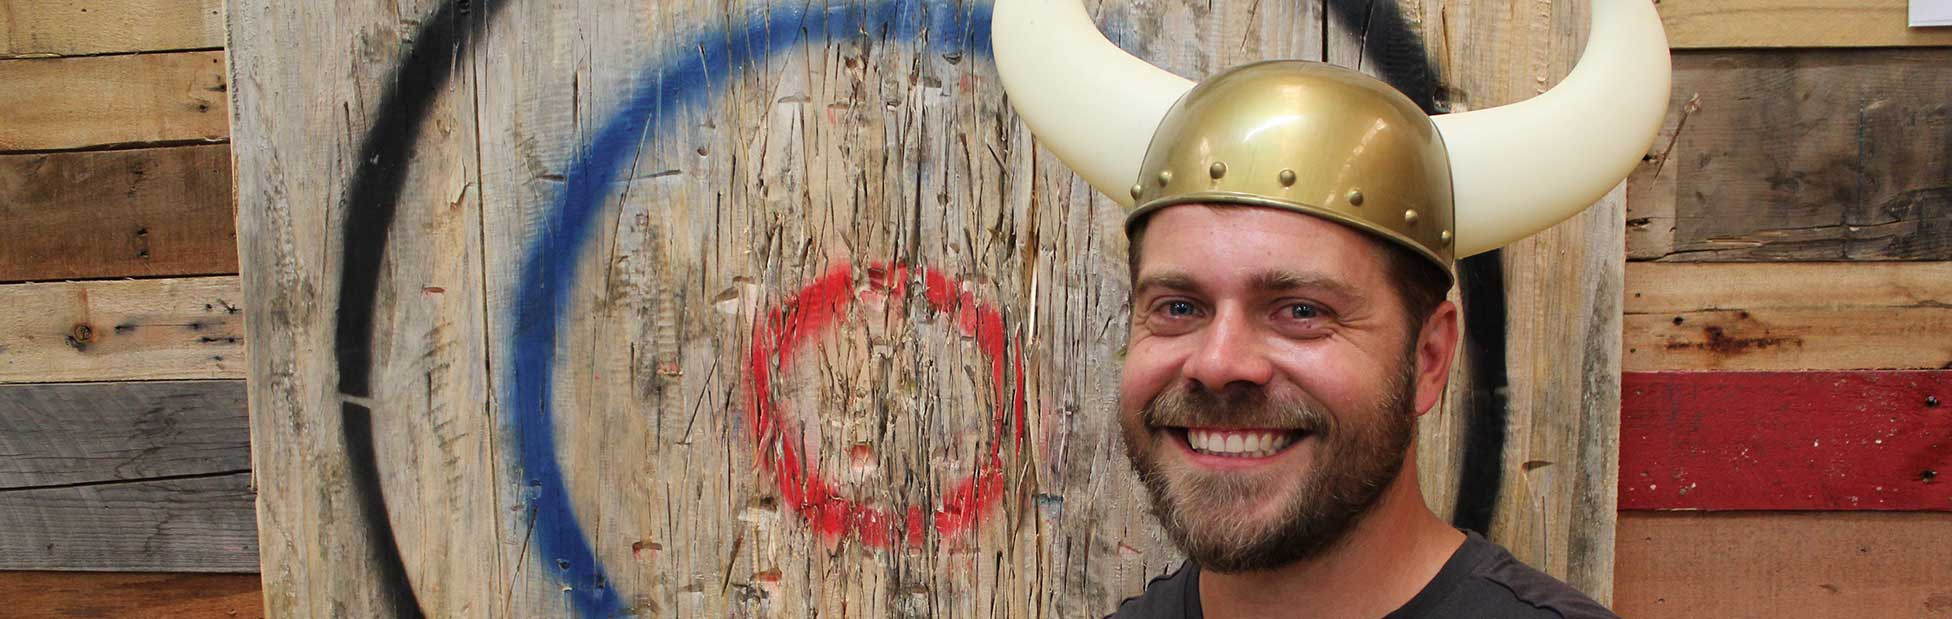 Image of a man in a Viking hat